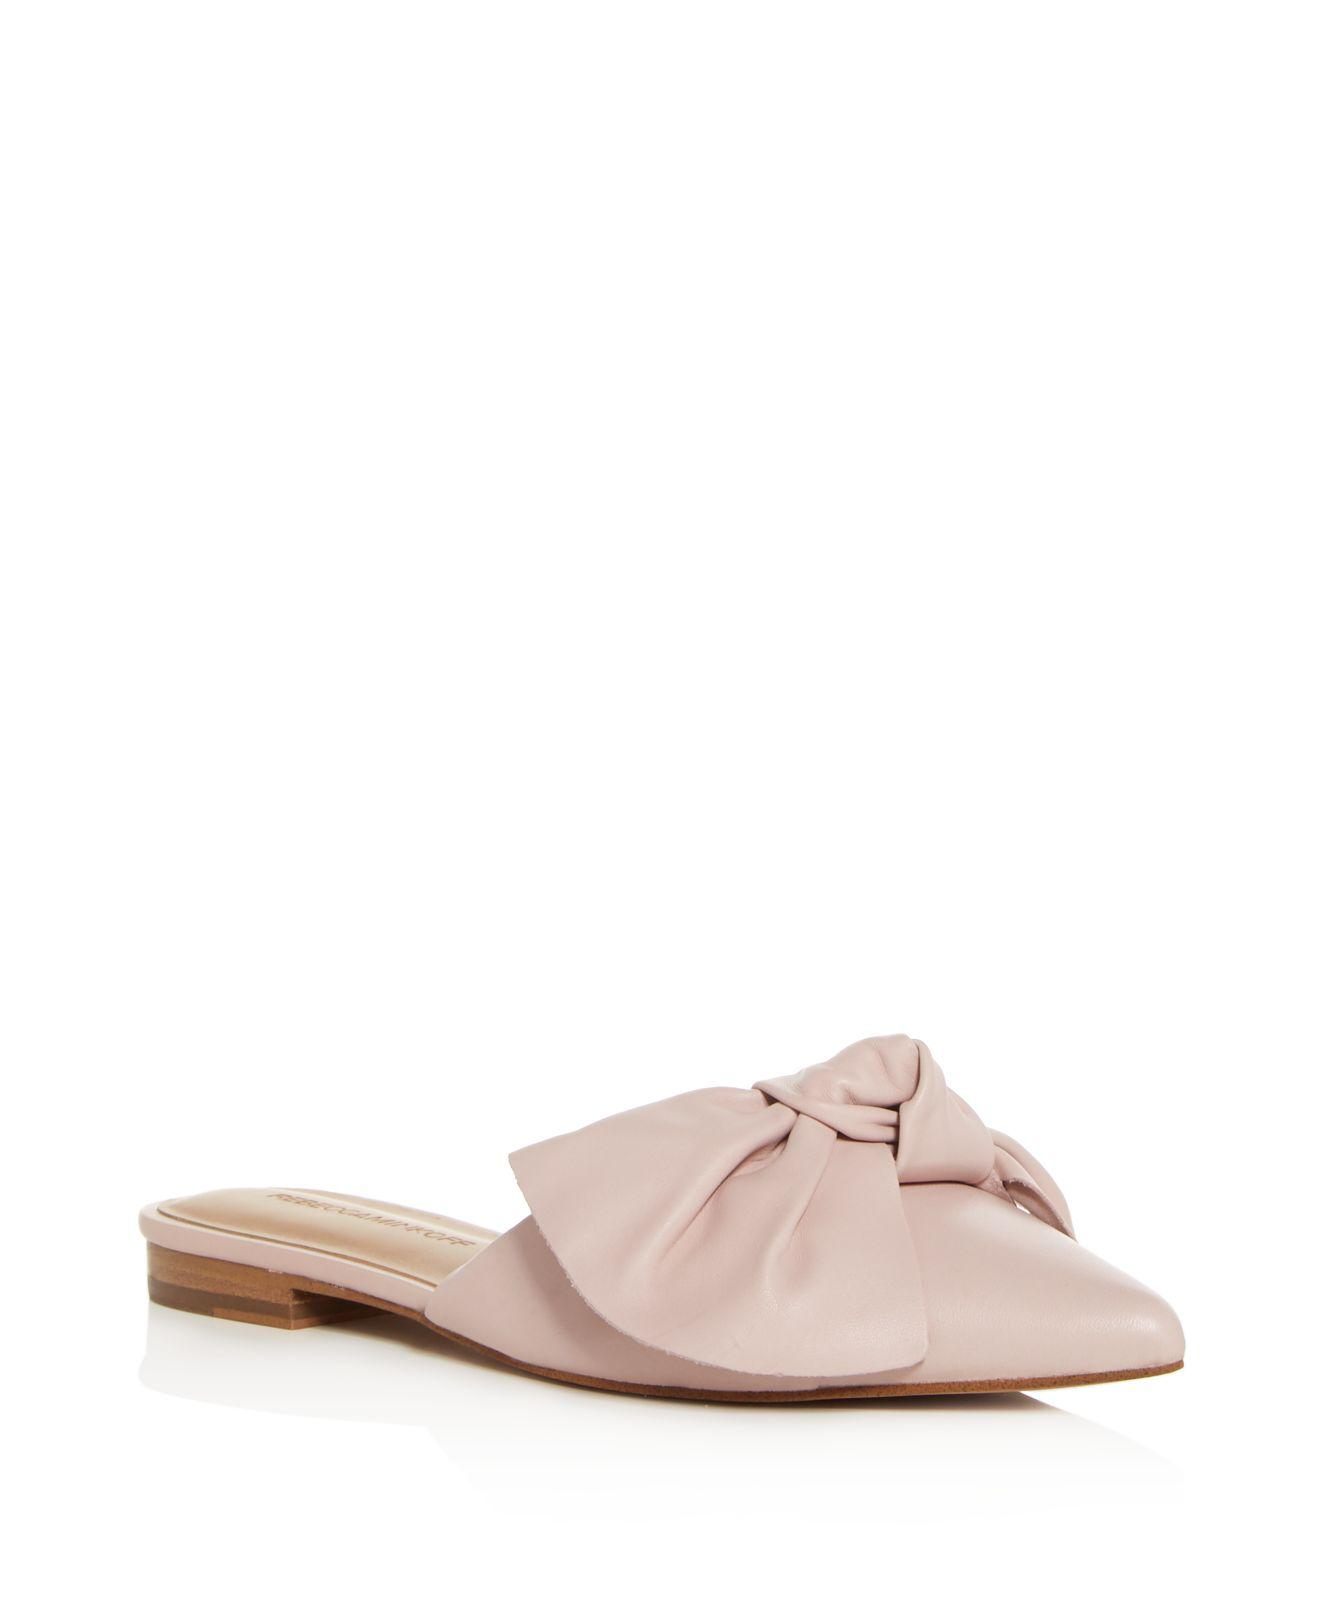 geniue stockist sale online discount extremely Rebecca Minkoff Pointed-Toe Bow Mules cheap supply the cheapest online explore oykIyWH